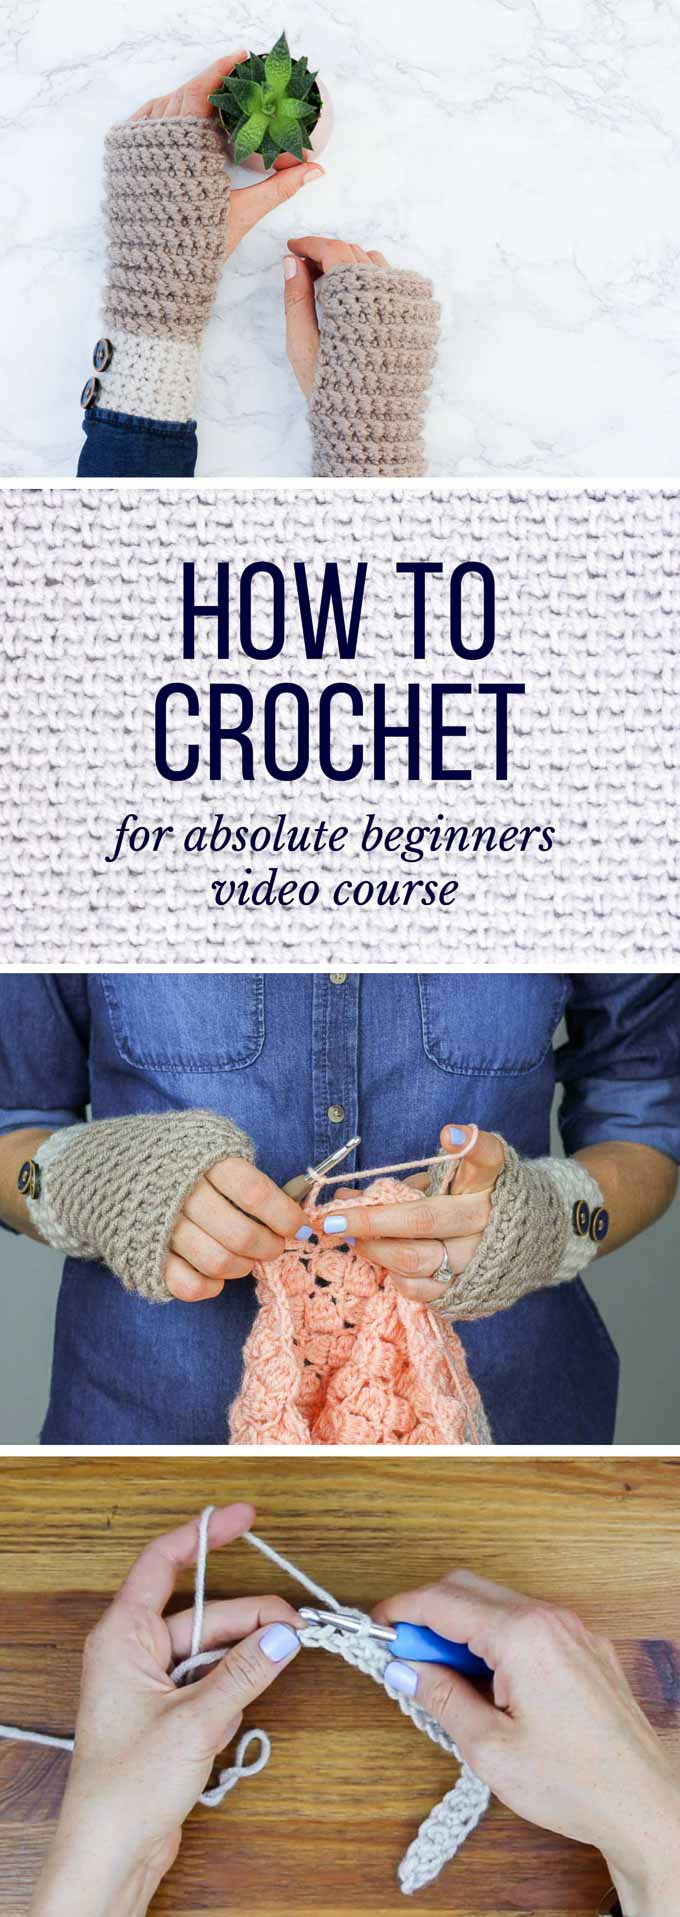 Tutorials On How To Crochet For Beginners : How-to-learn-how-to-crochet-beginners - Make & Do Crew